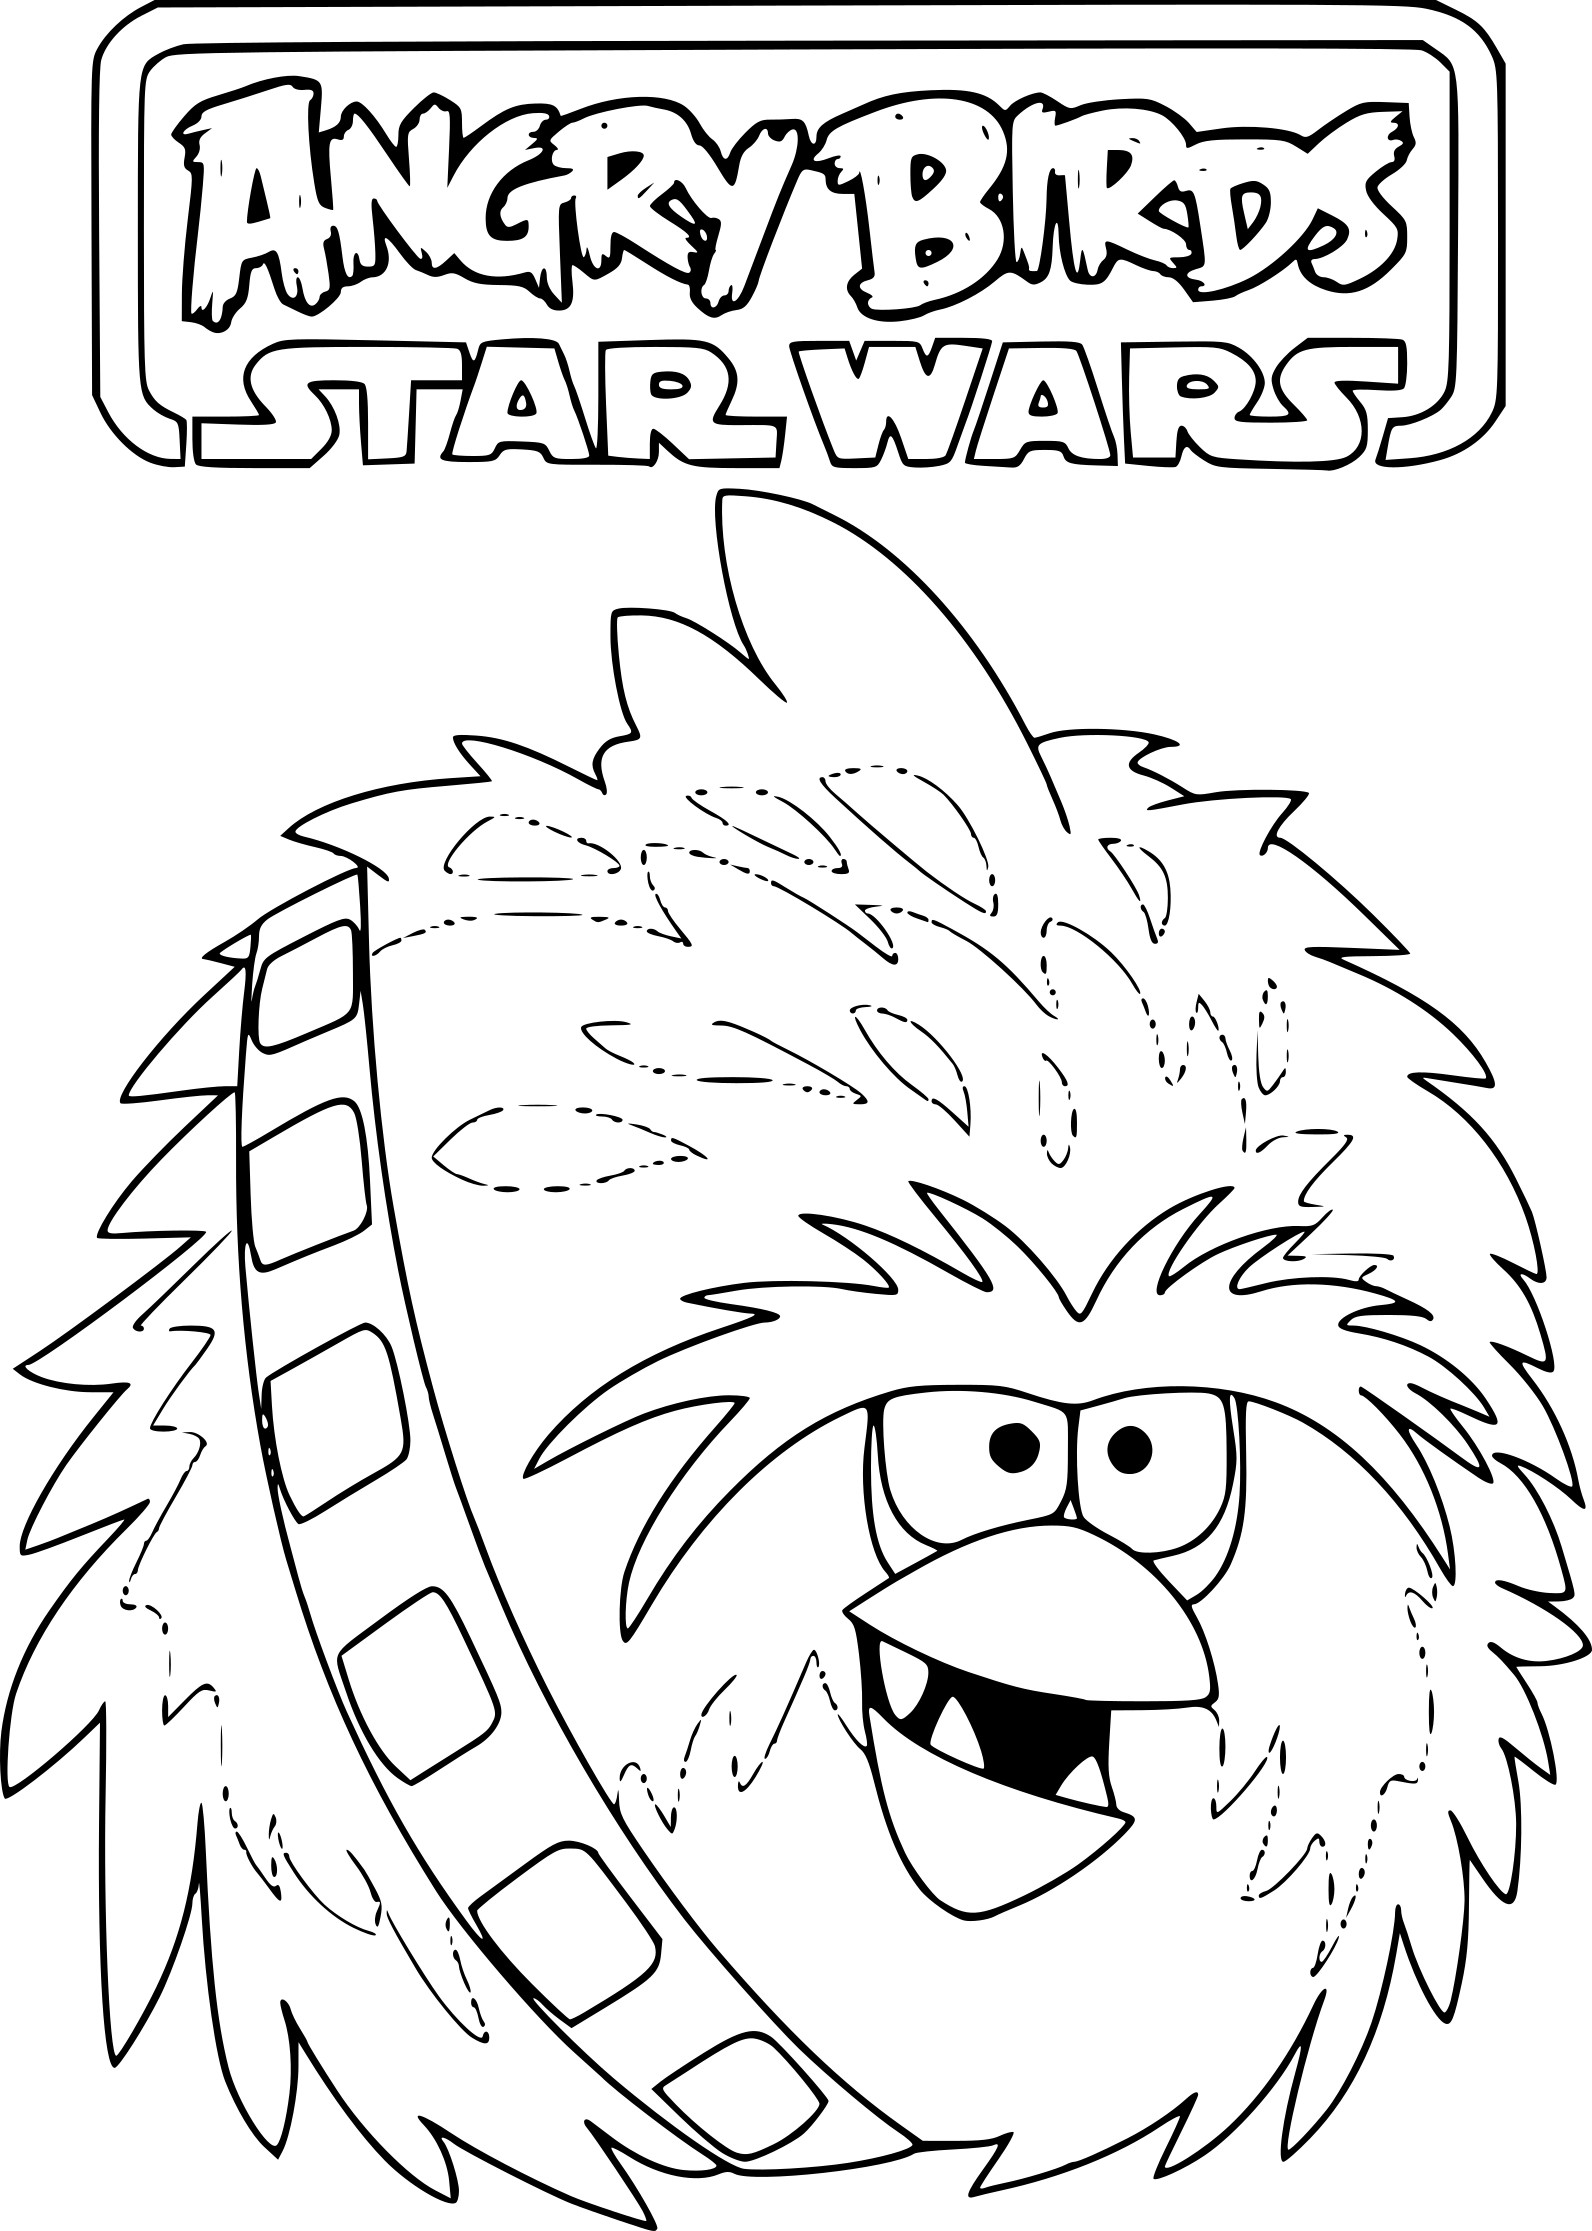 Coloriage angry birds star wars imprimer sur coloriages - Dessin de angry birds star wars ...